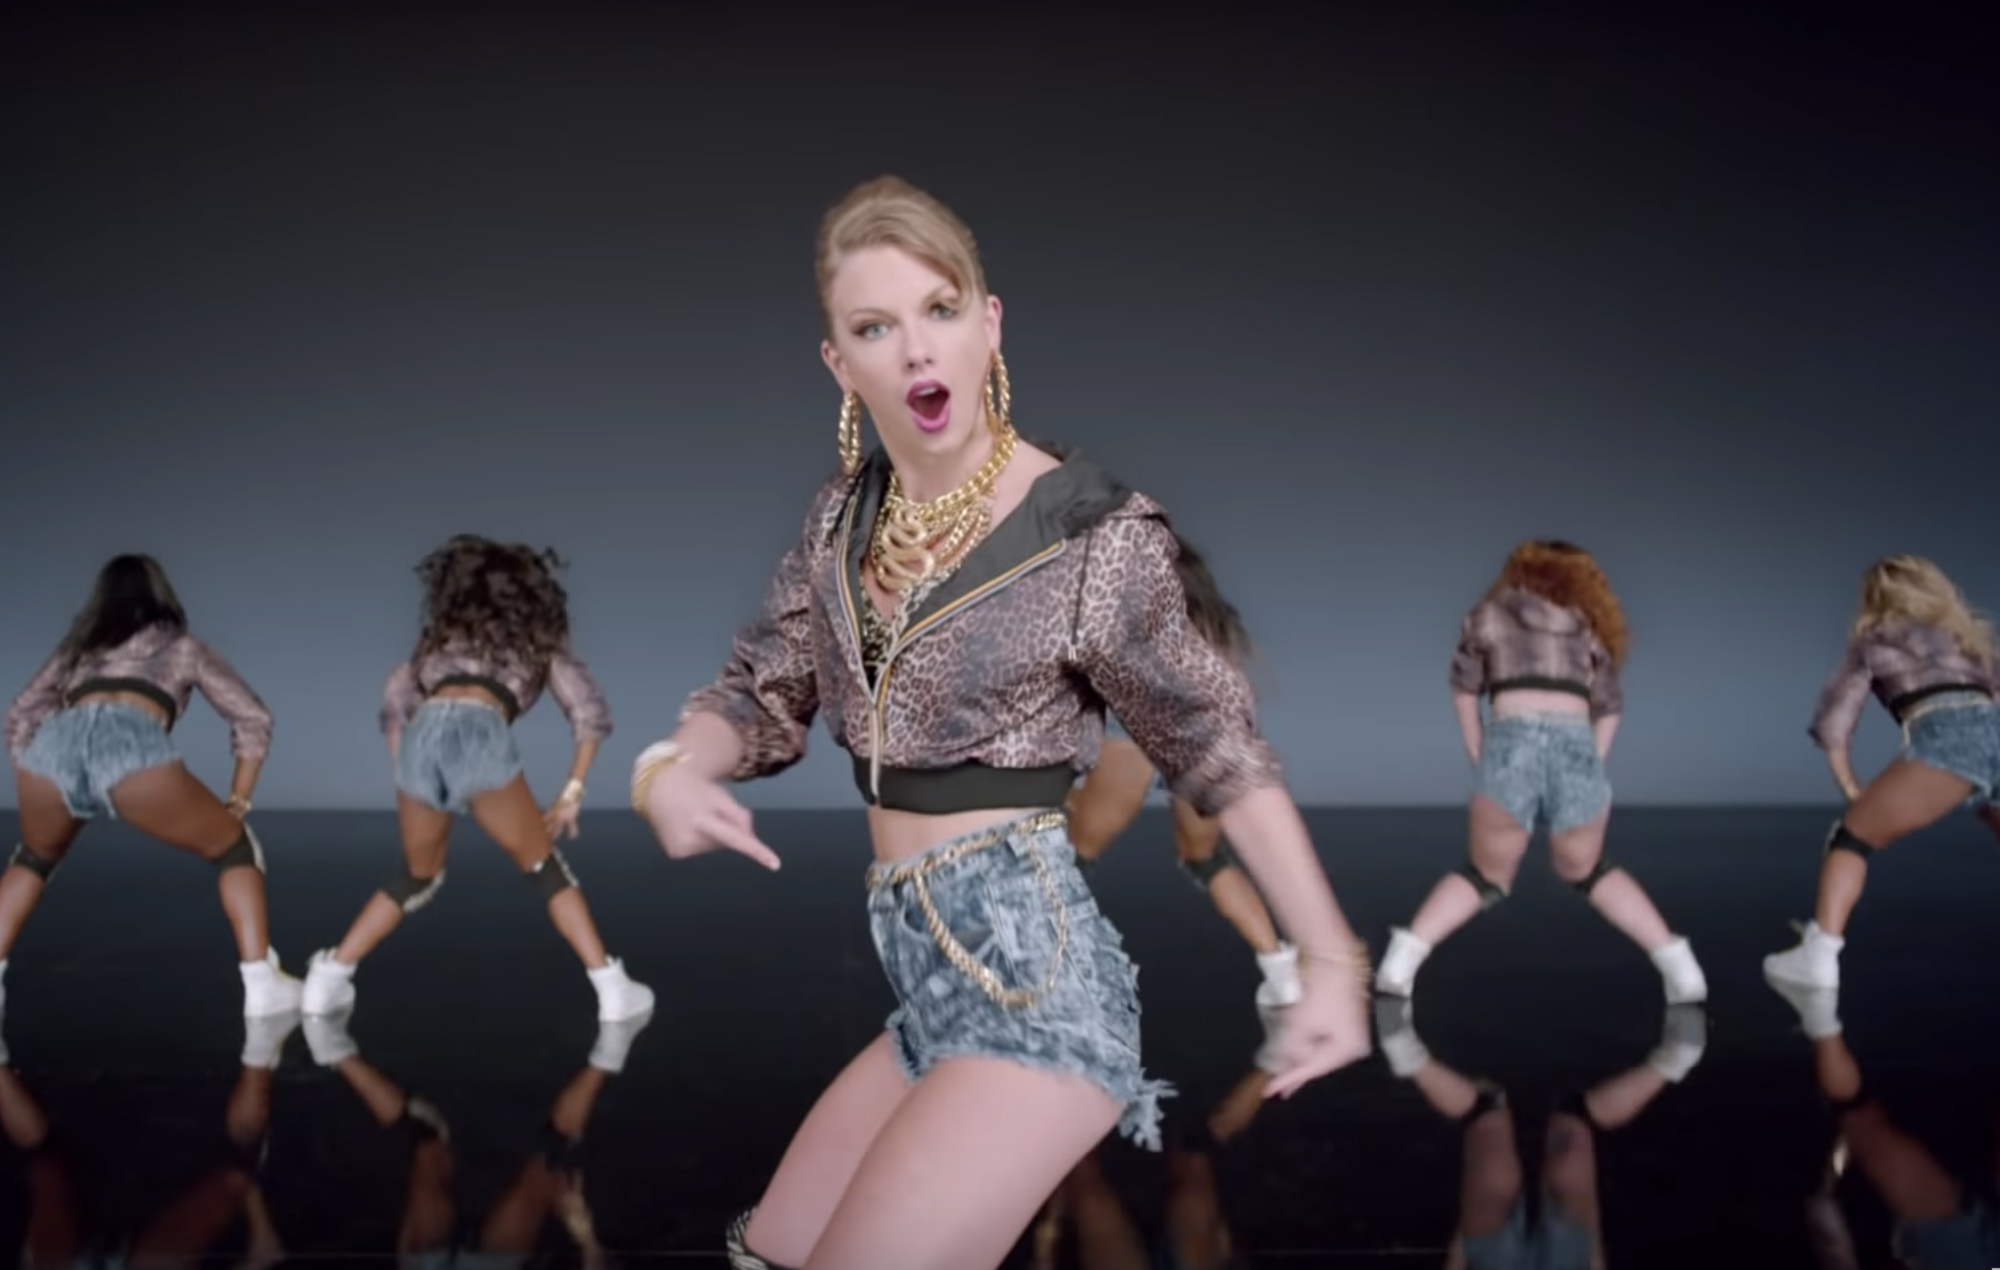 """Taylor Swift representative on copyright lawsuit: """"The true writers of 'Shake It Off' will prevail again"""""""